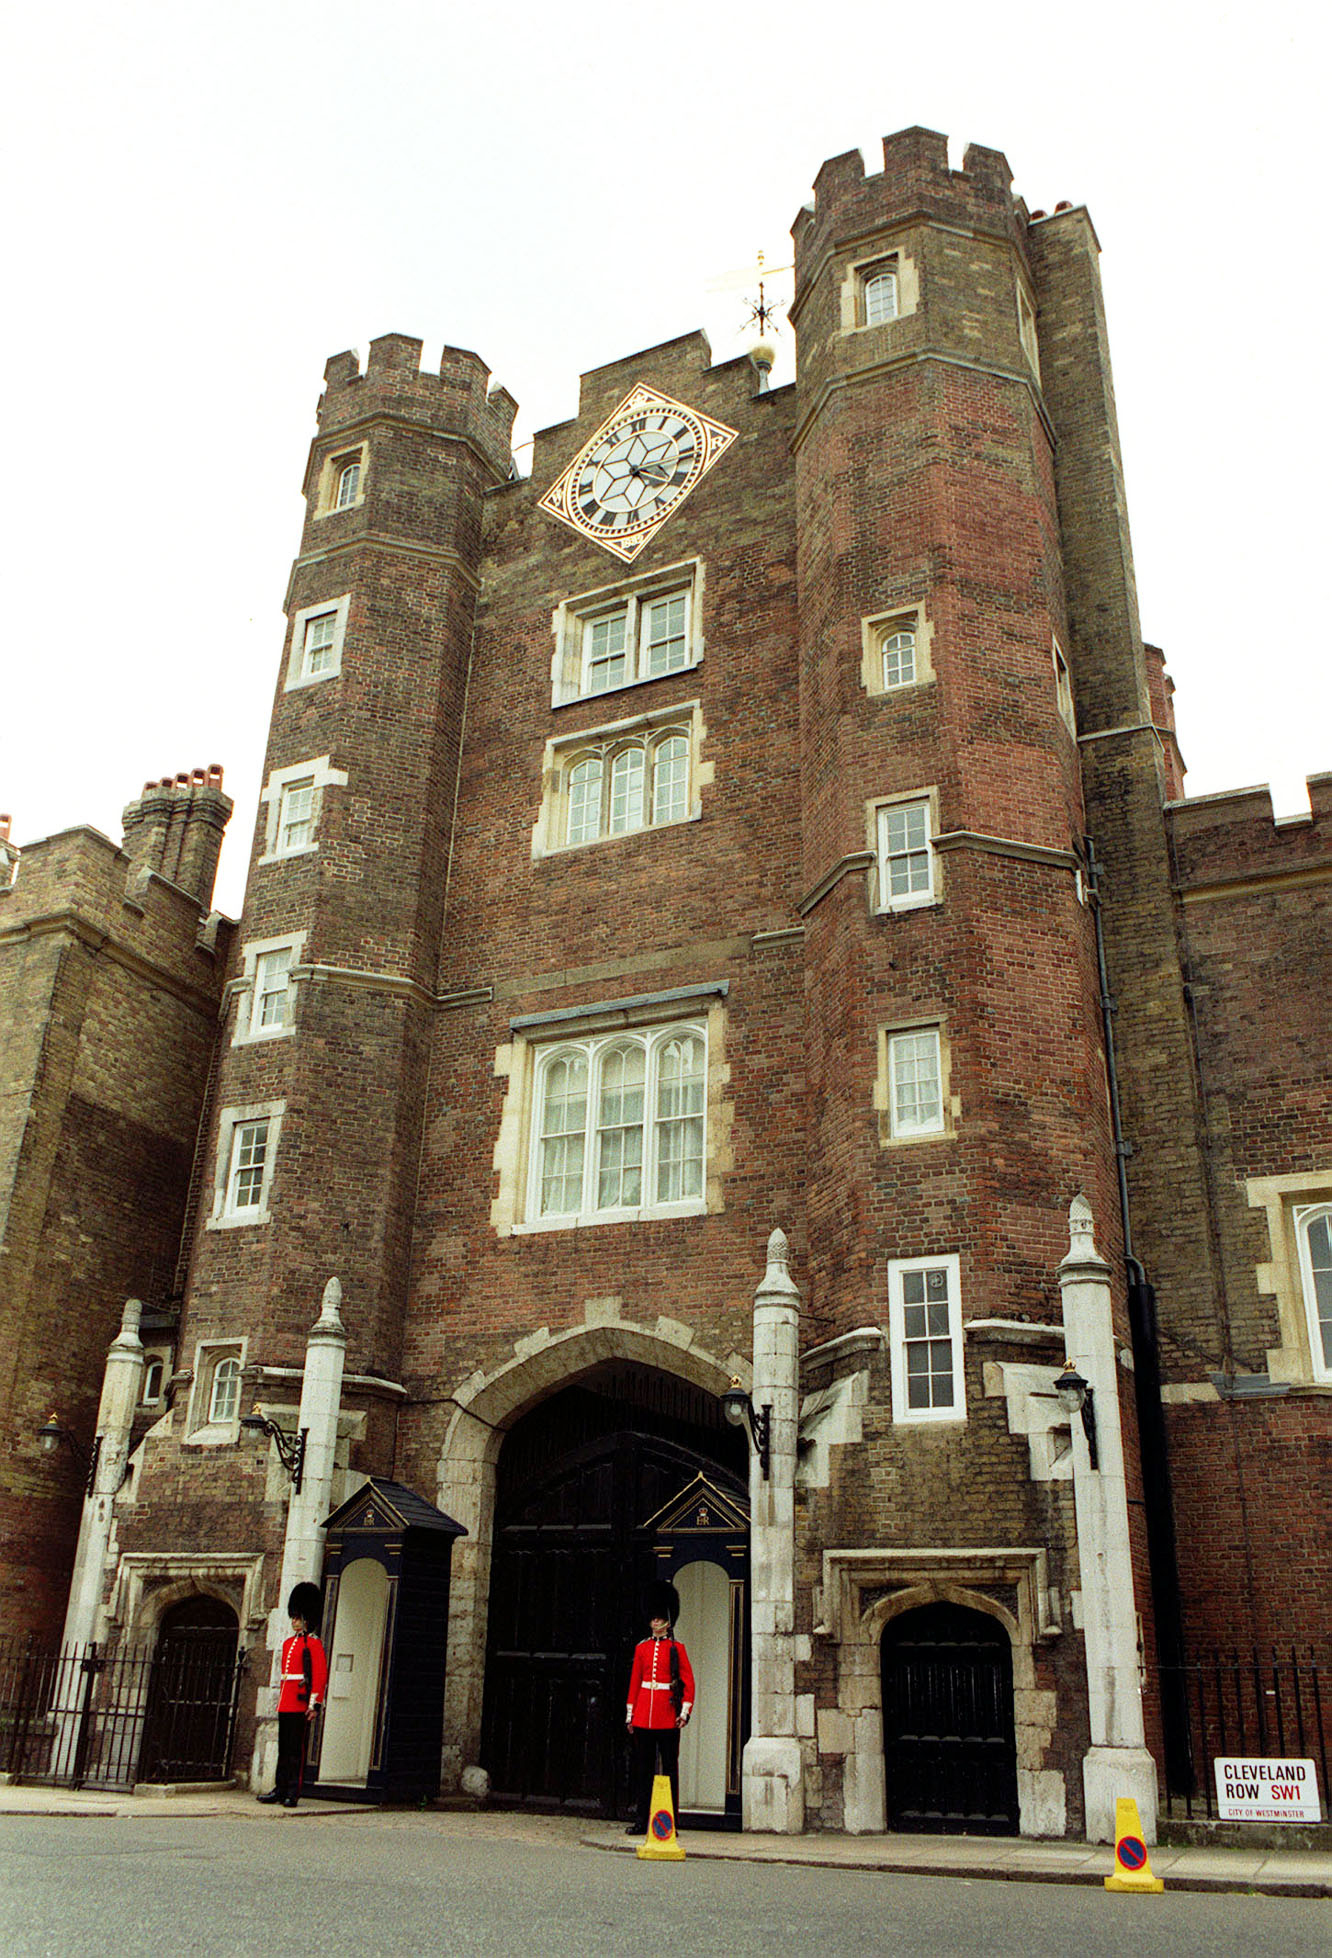 St James's Palace, exterior